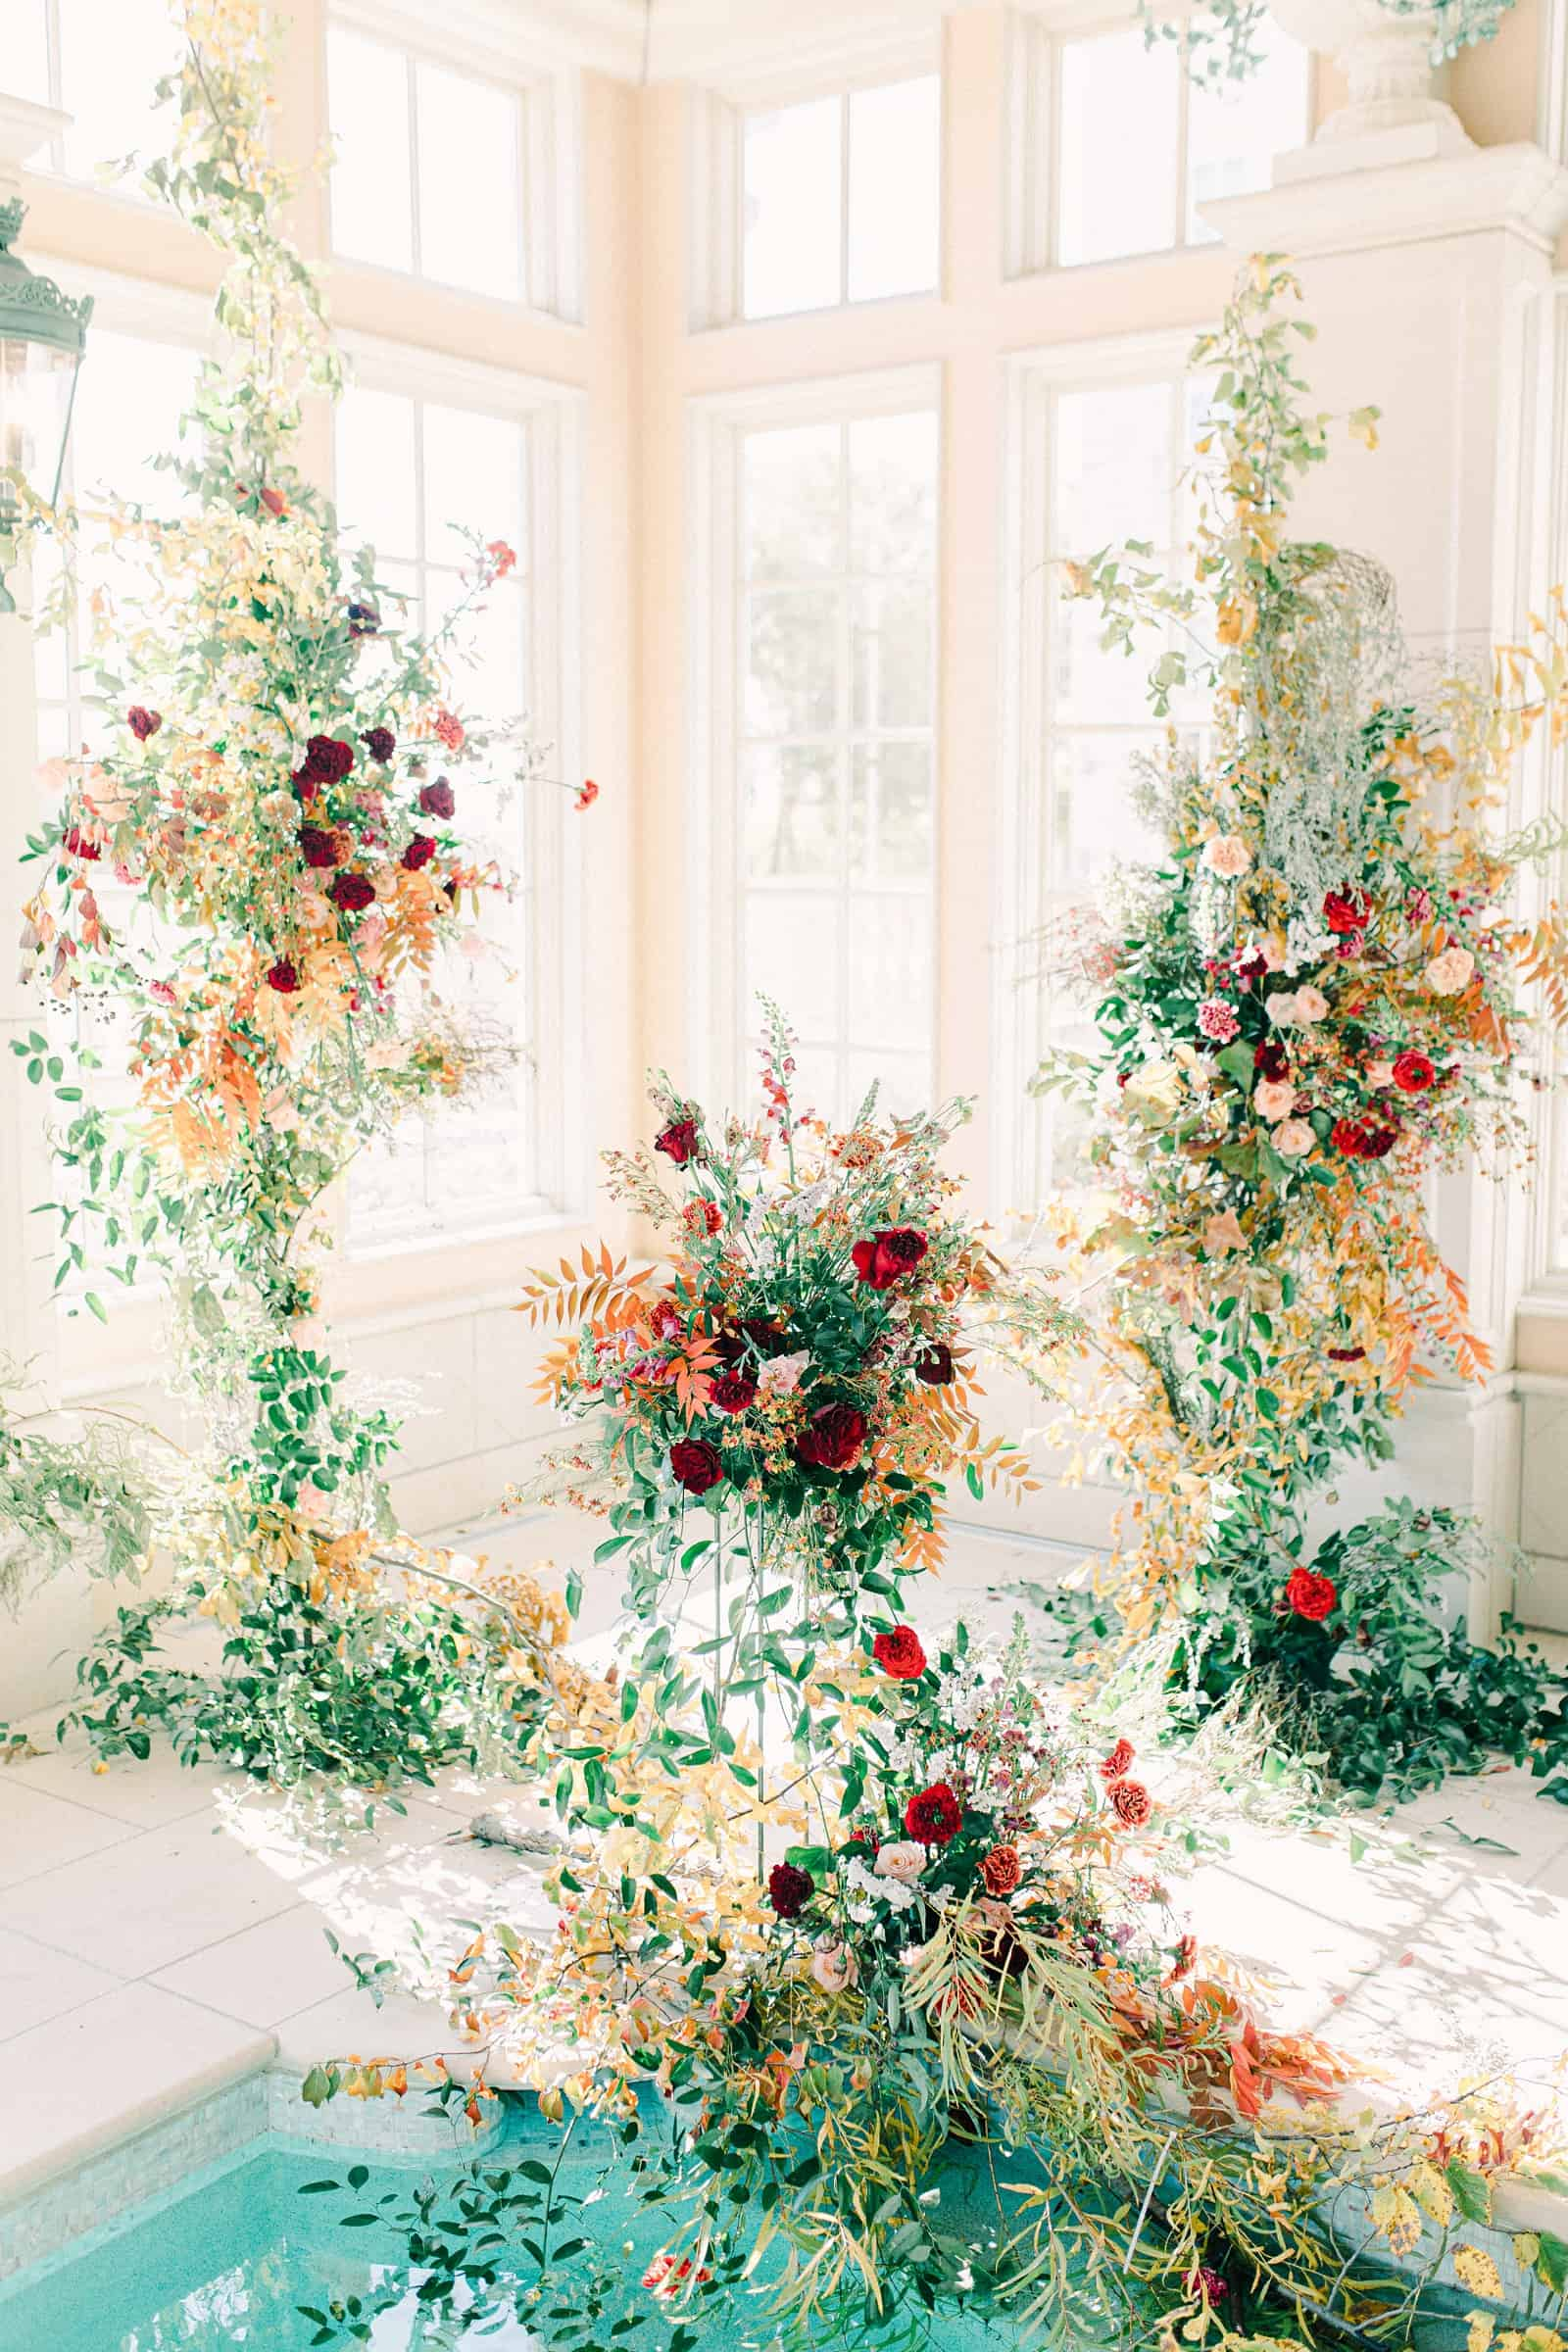 Ornate floral backdrop with lush greenery for elegant European wedding ceremony at the Olana in Dallas, Texas